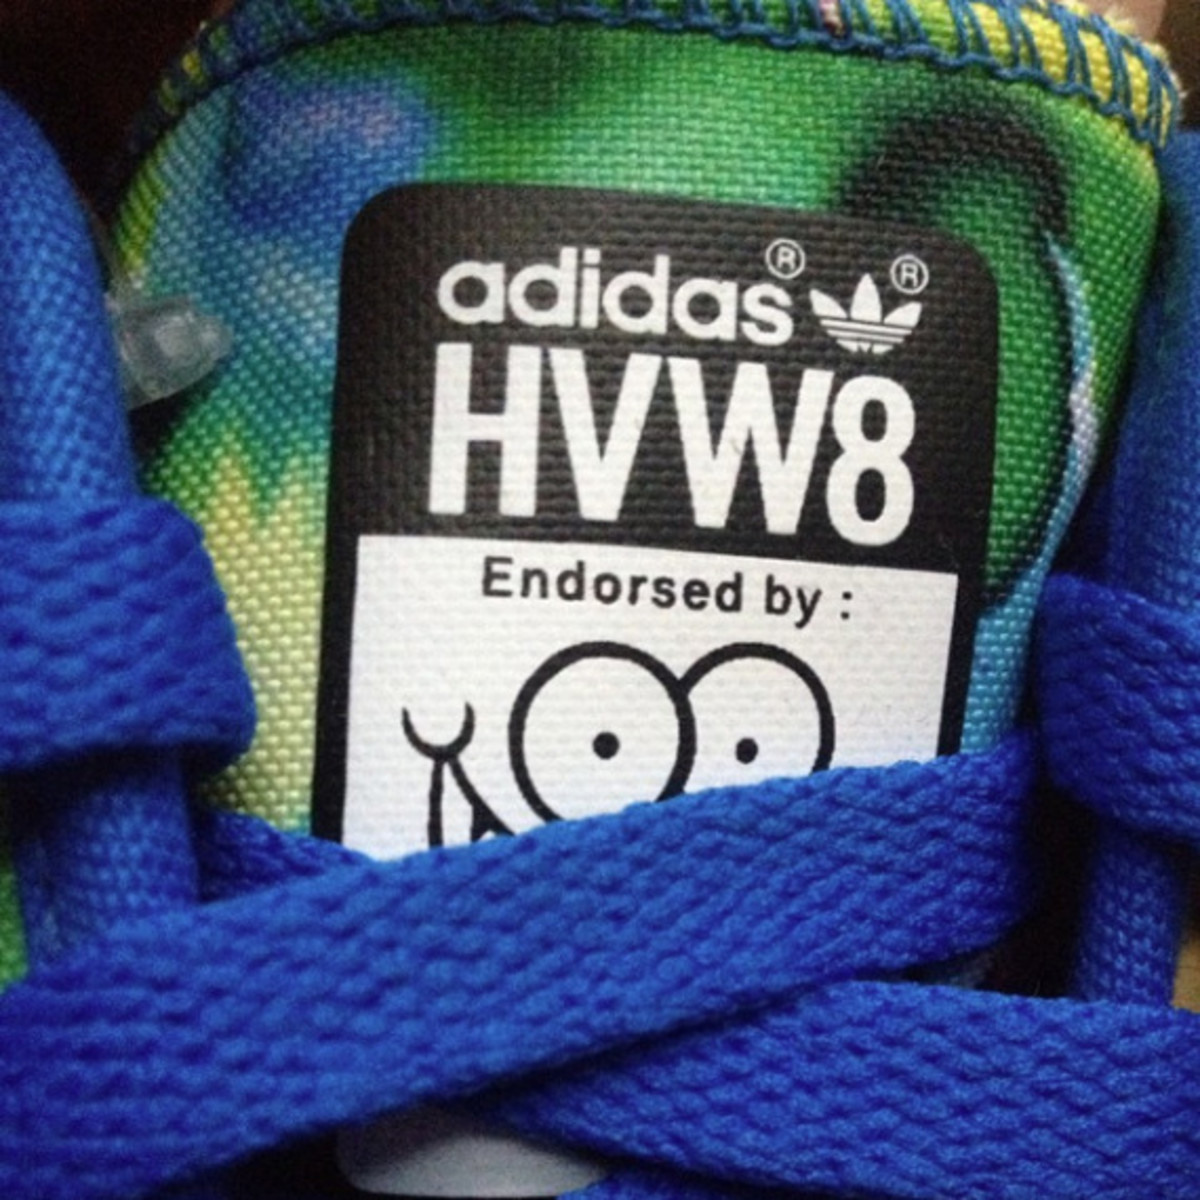 purchase cheap cf577 d4acd adidas Originals x HVW8 Gallery by Kevin Lyons  Jean André  Teaser - 0